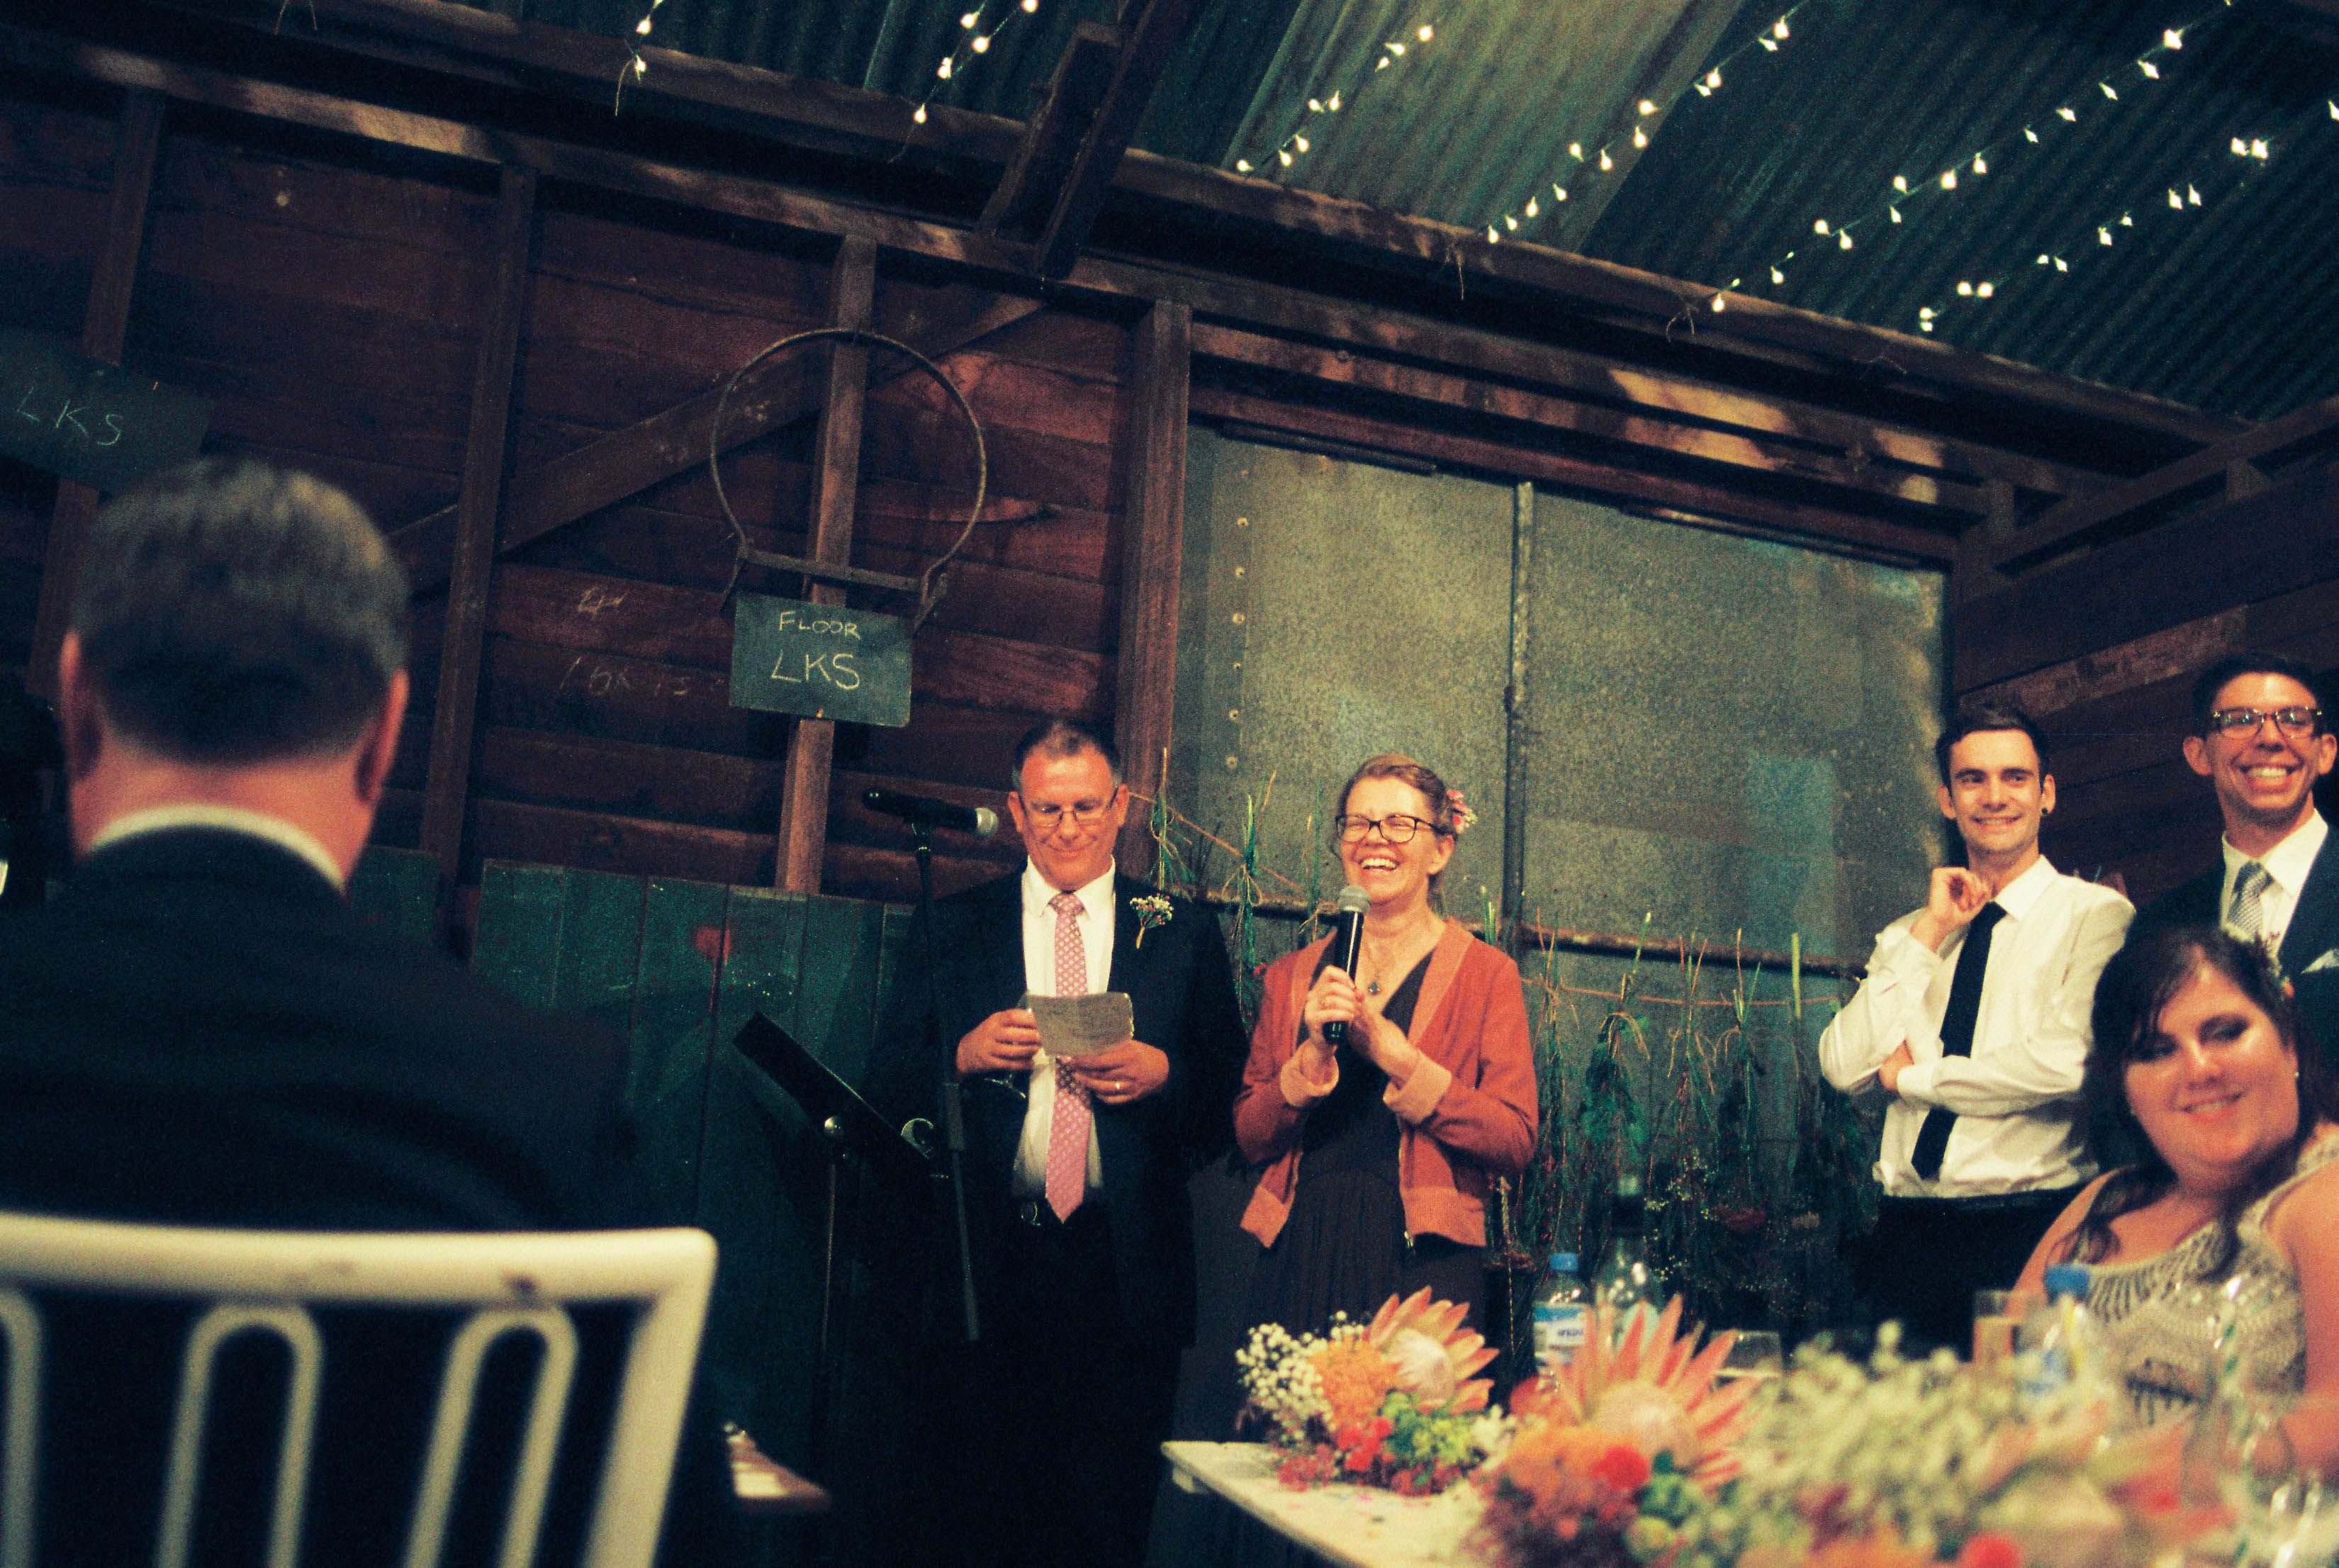 Honest Wedding Photography of the Groom's Parents giving their speech